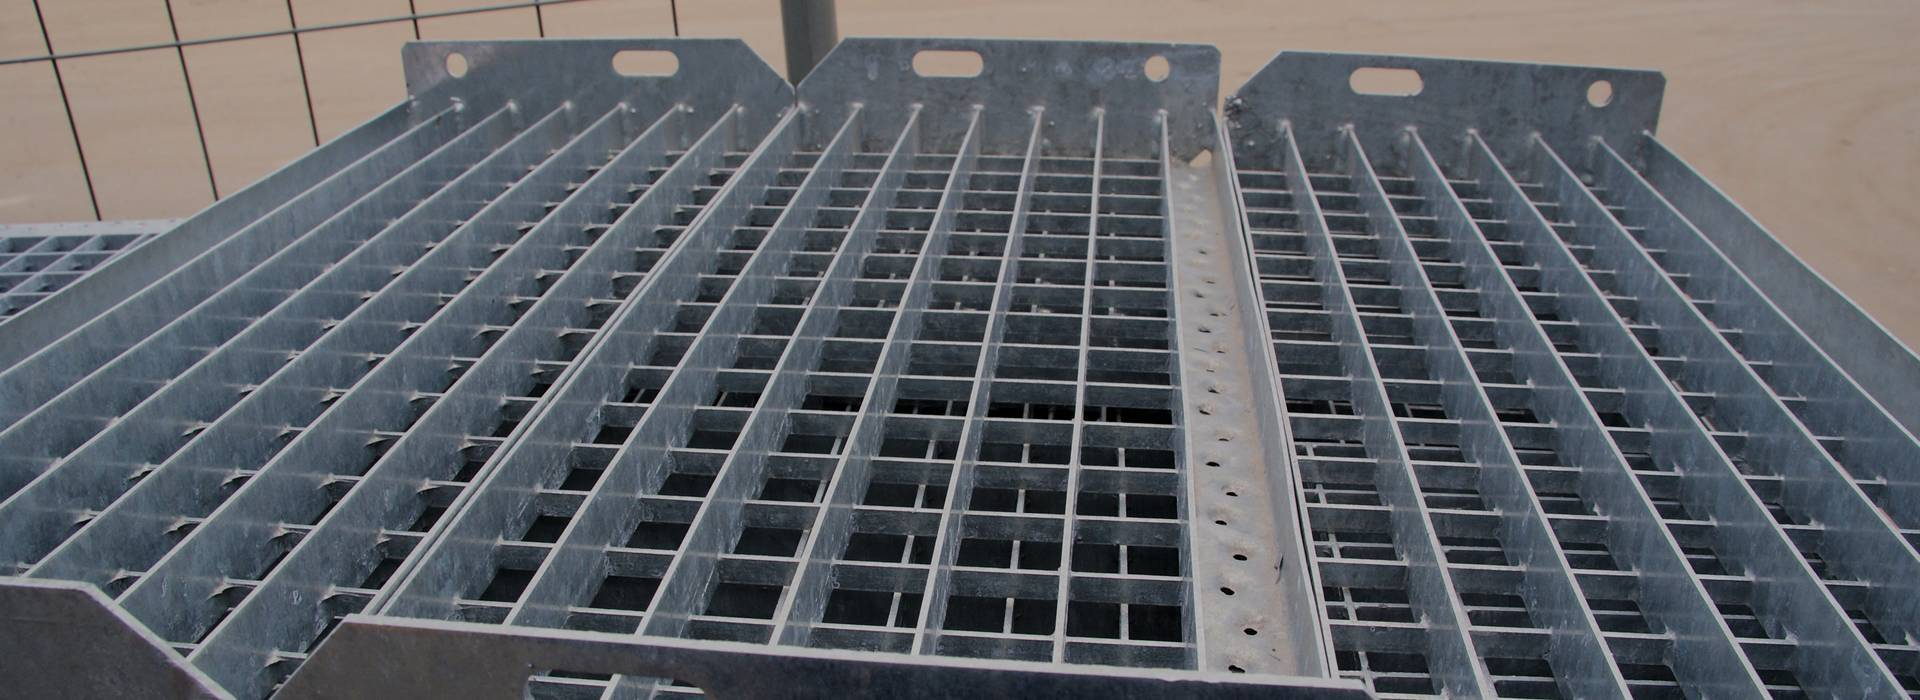 Some press-locked steel grating that the height of bearing bar and cross bar is different are on the ground.